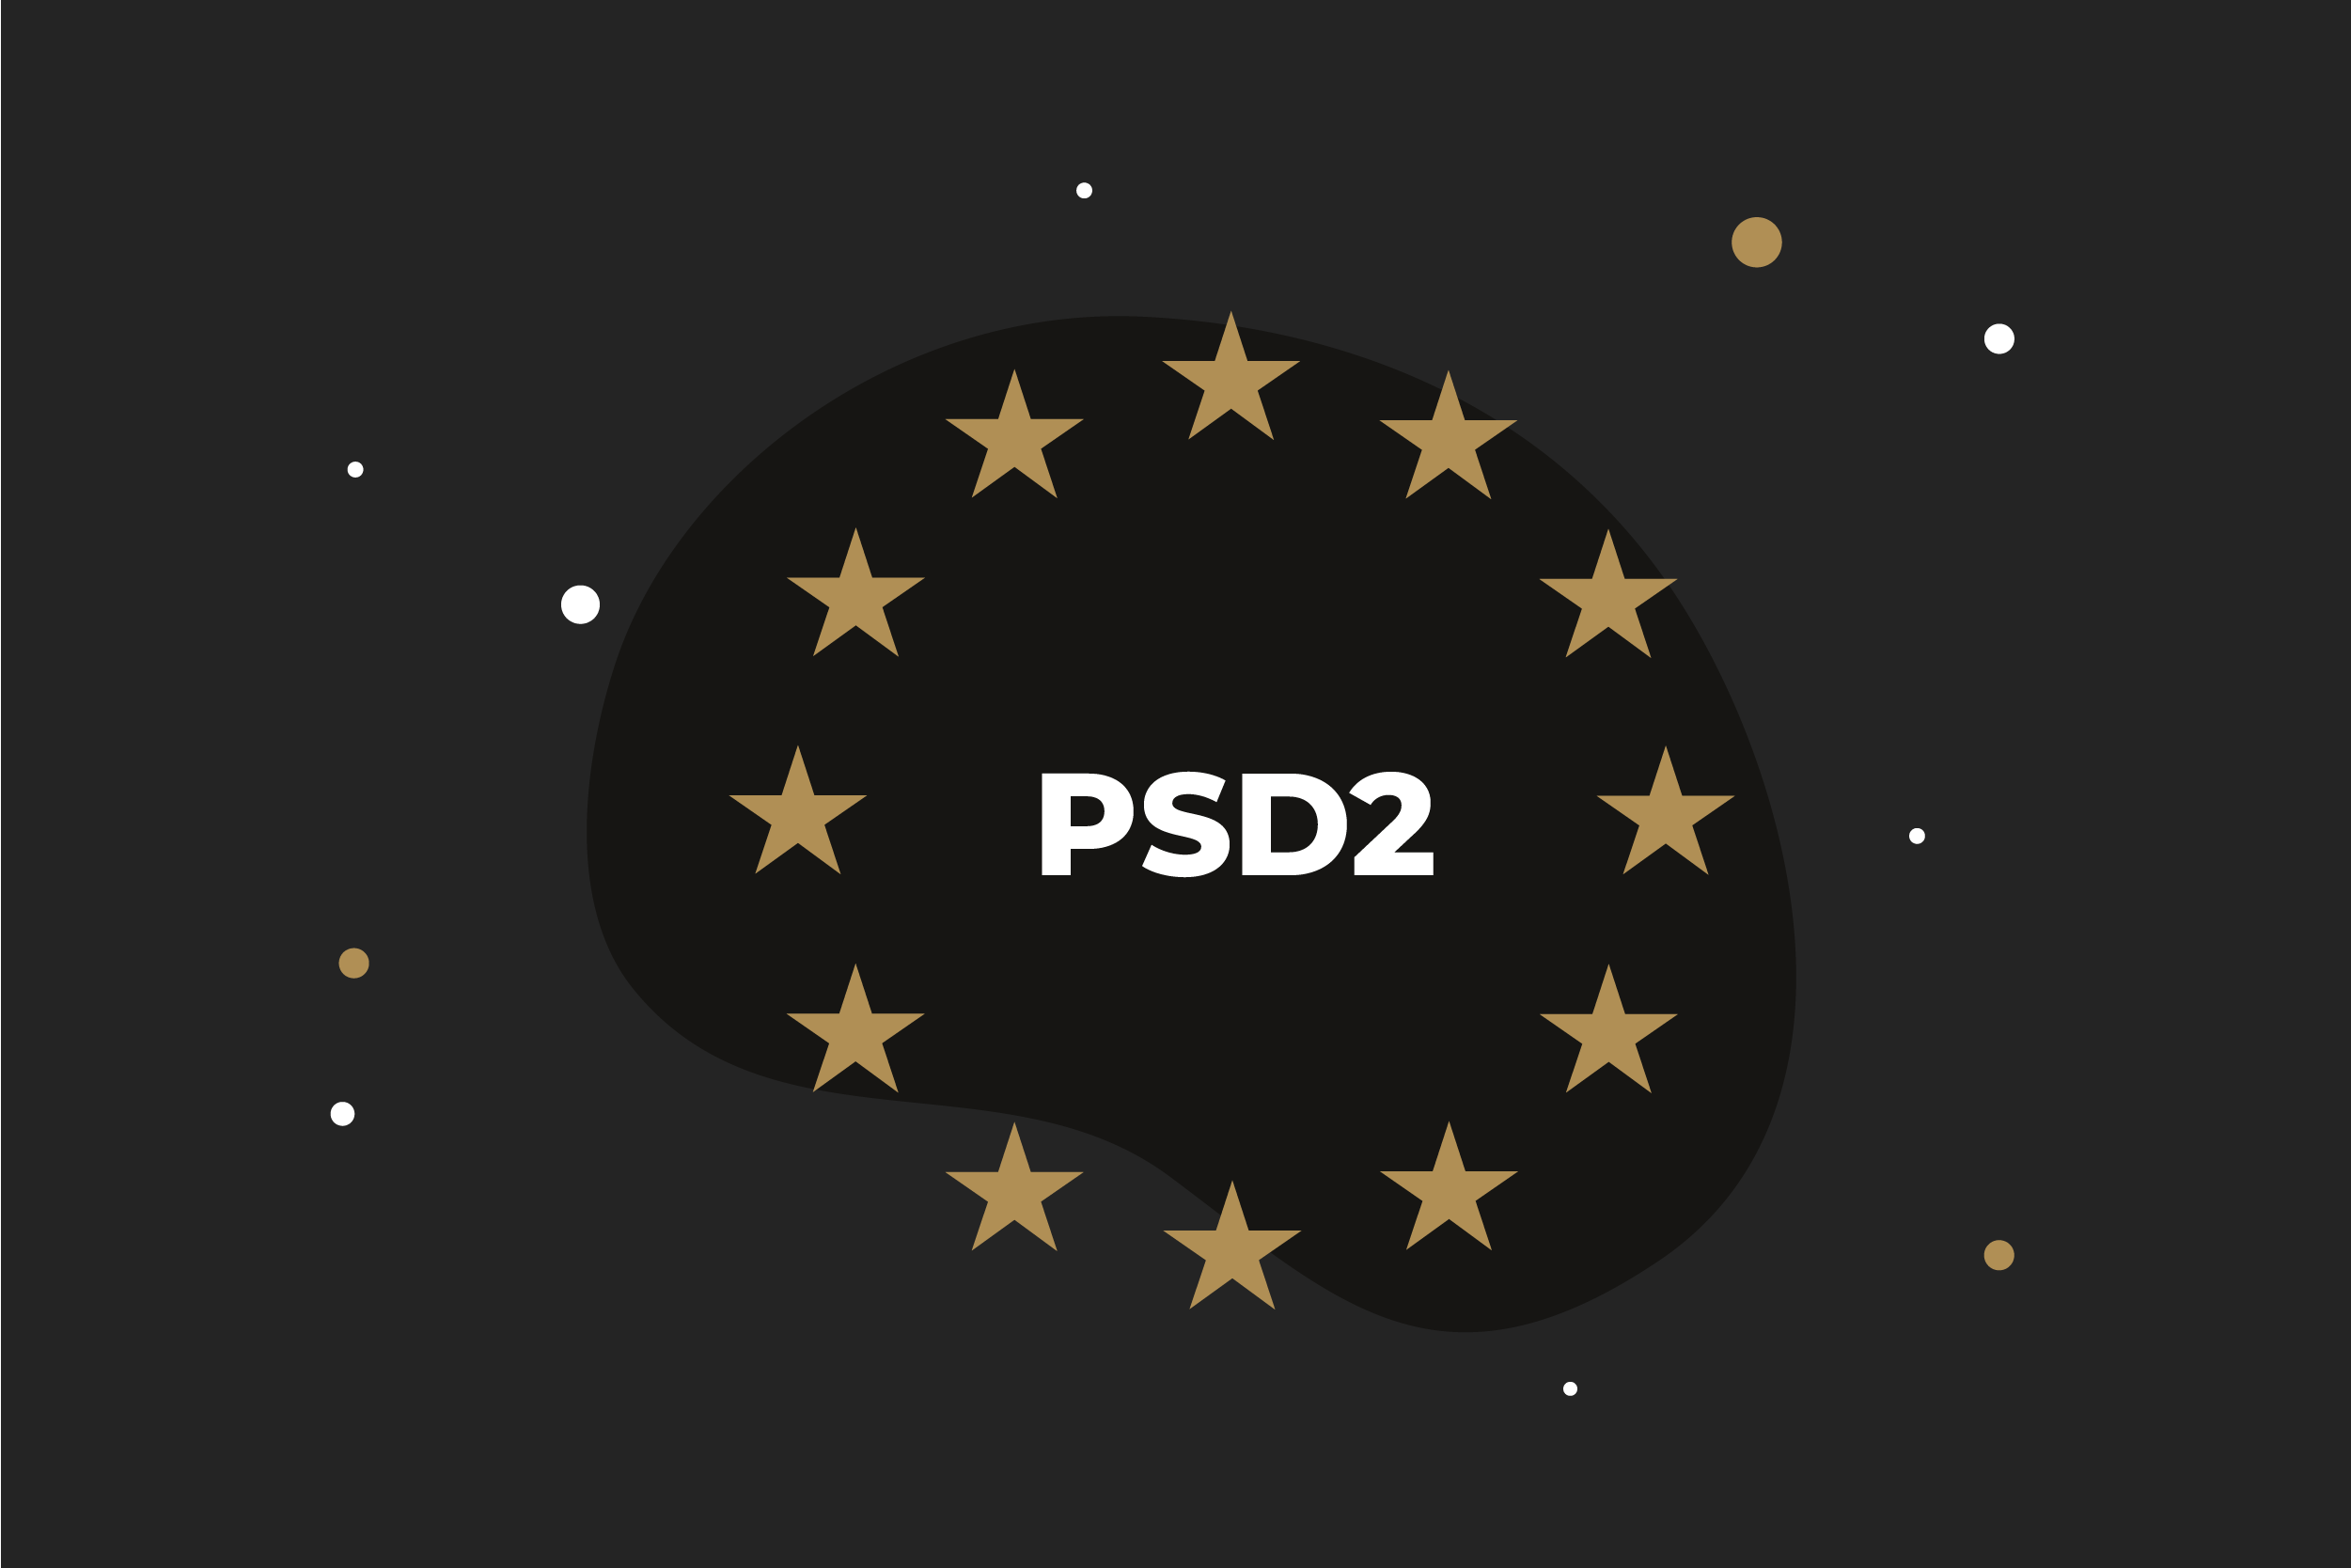 What is PSD2 regulation and what is the impact?